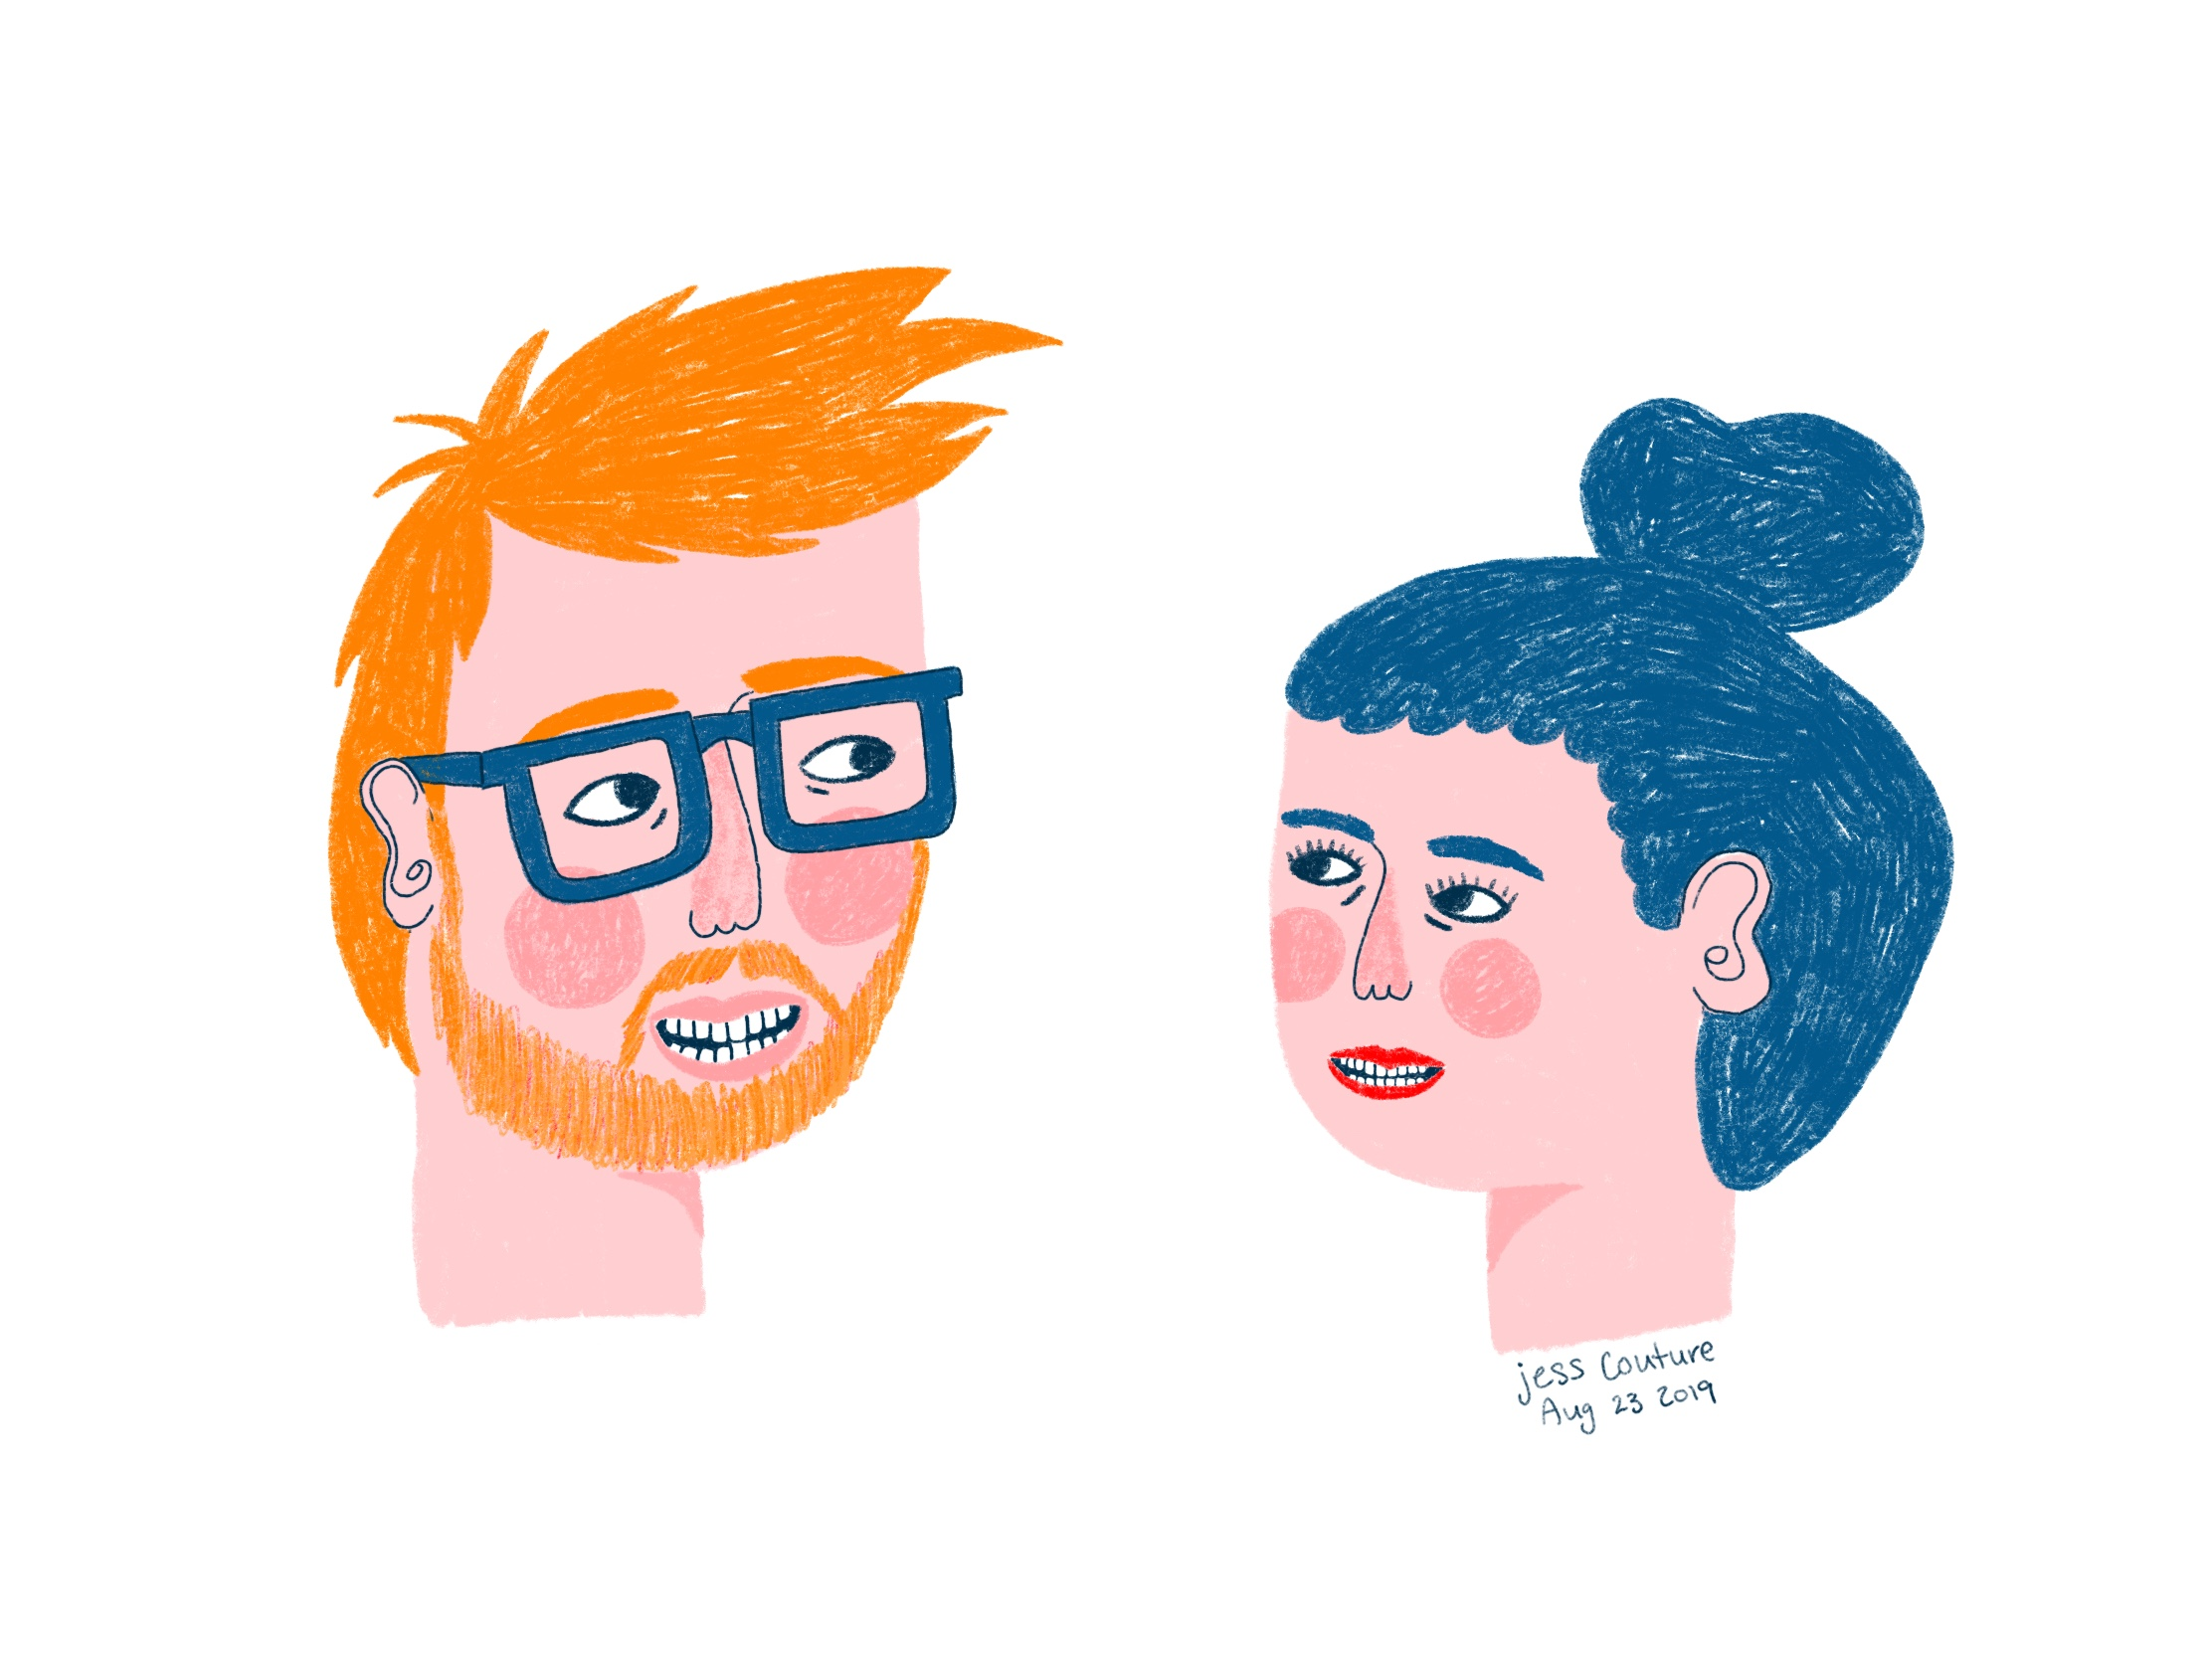 Find you a partner who looks at you the way illustrated me looks at illustrated Graham.